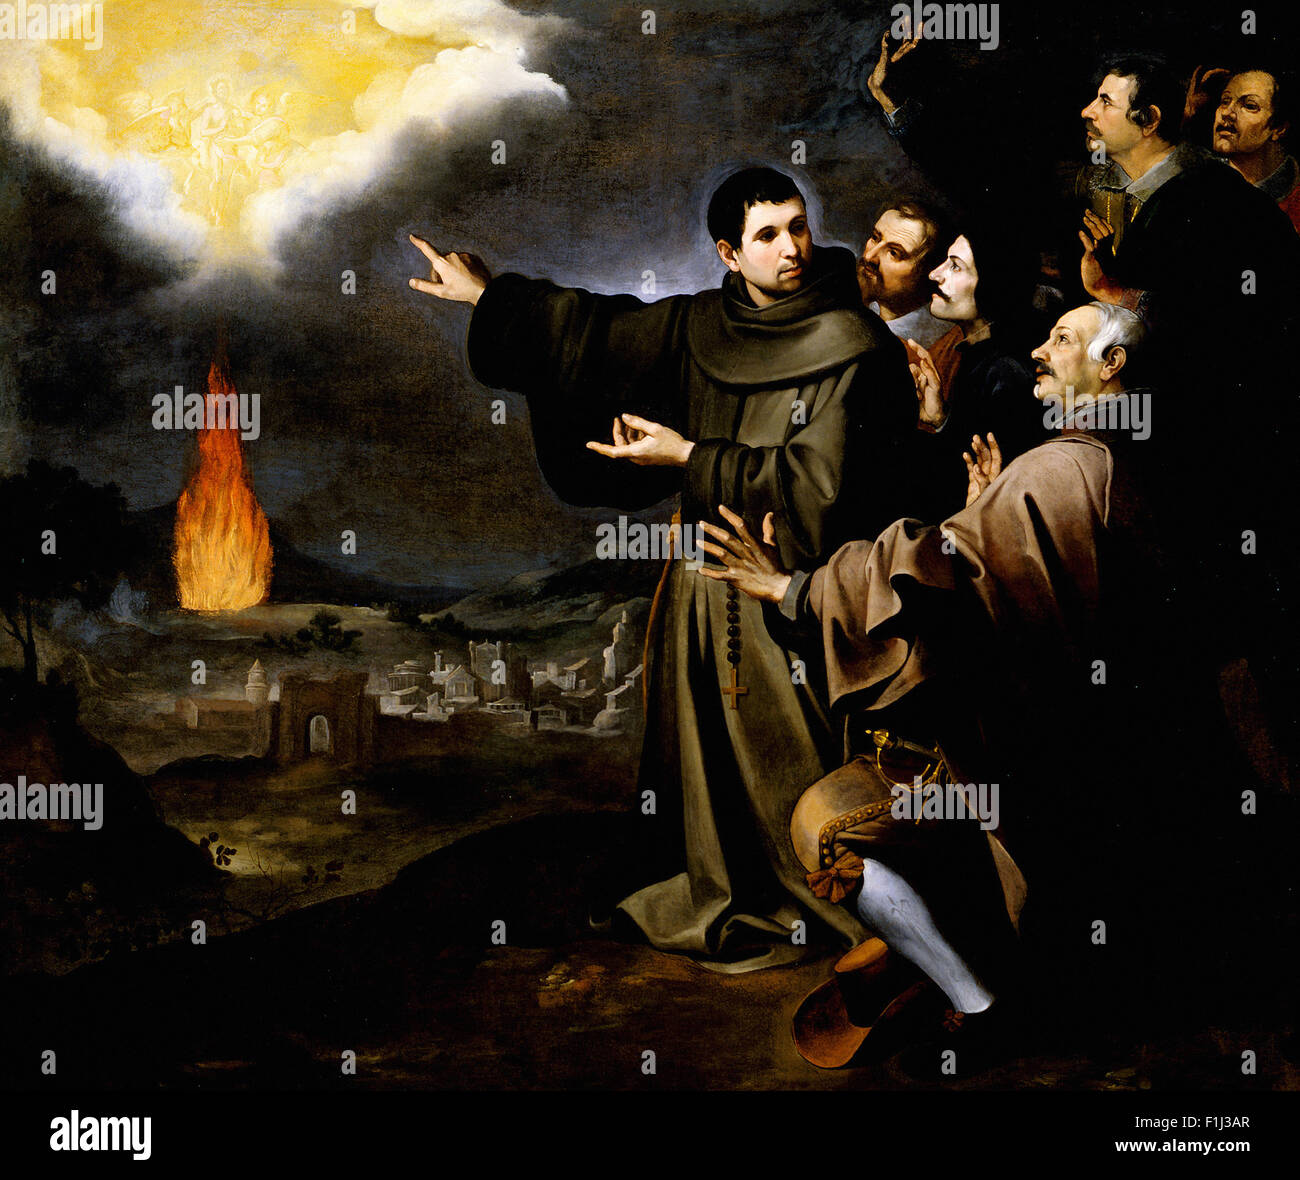 Bartolomé Esteban Murillo - Fray Julián of Alcalá's Vision of the Ascension of the Soul of King Philip II of Spain Stock Photo